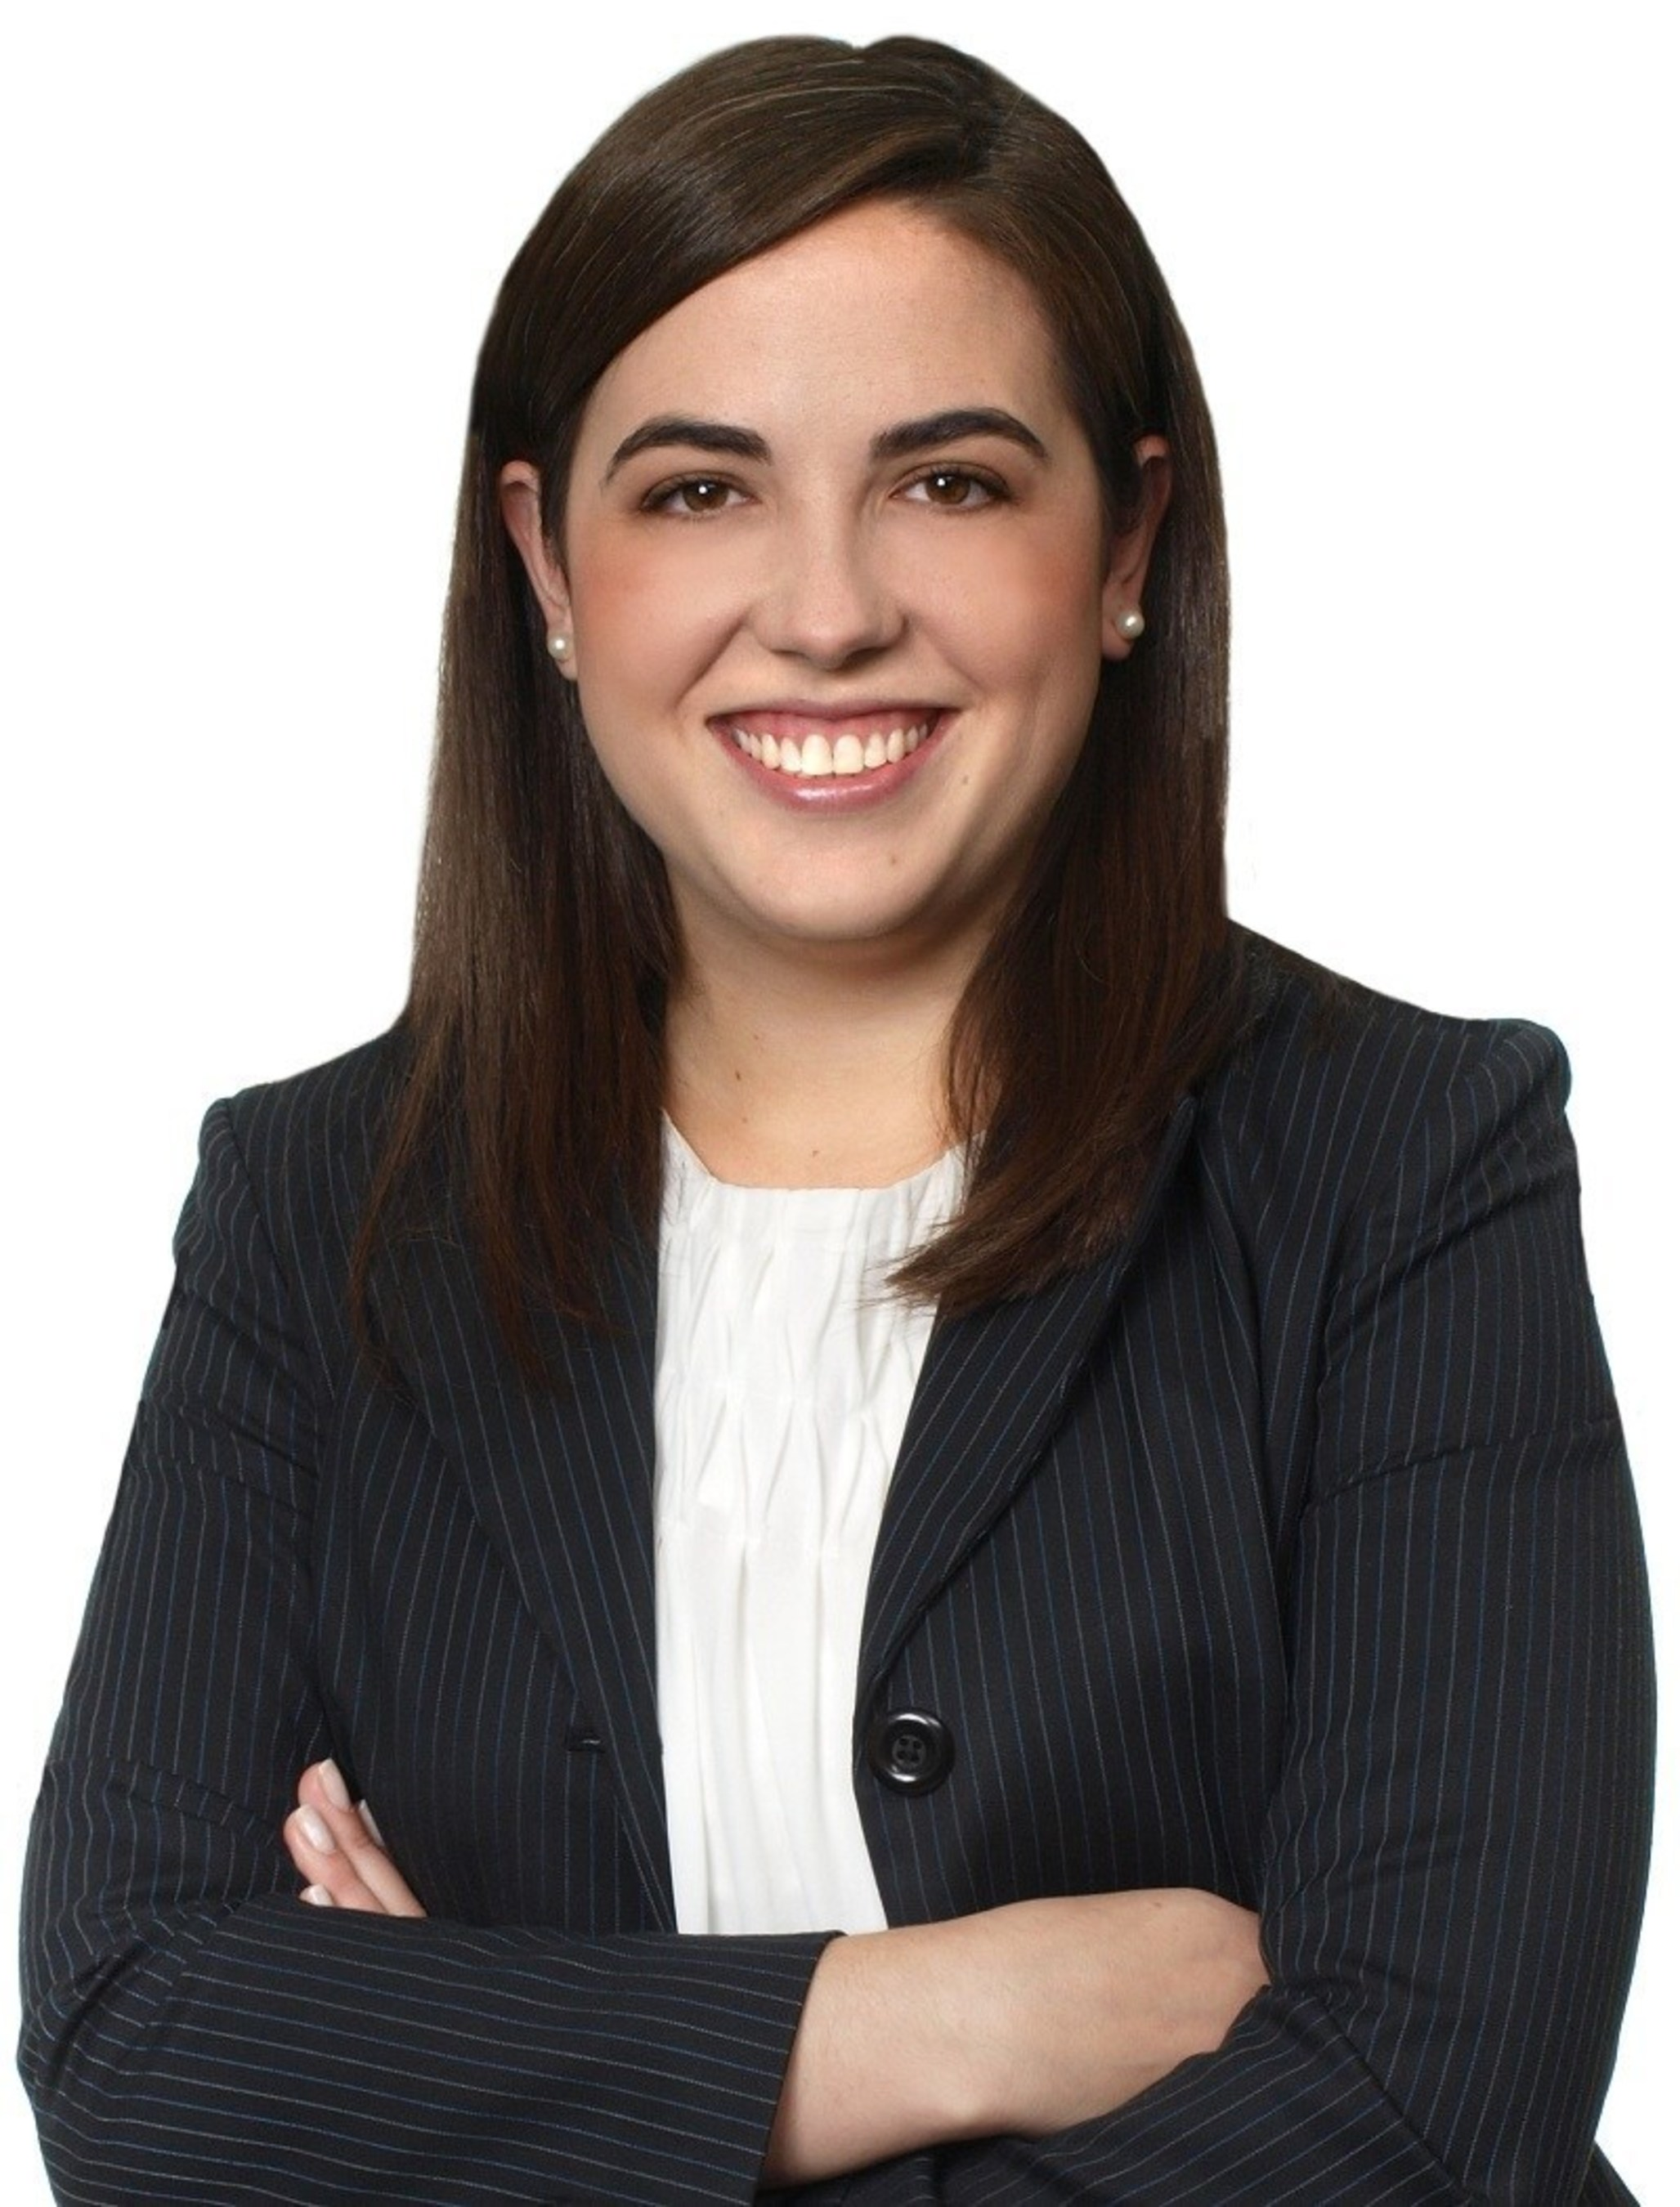 ORBA's Alison Fetzer, CPA has been reappointed by the Illinois CPA Society (ICPAS) to serve on its Not-For-Profit Organizations Committee for her fourth term.